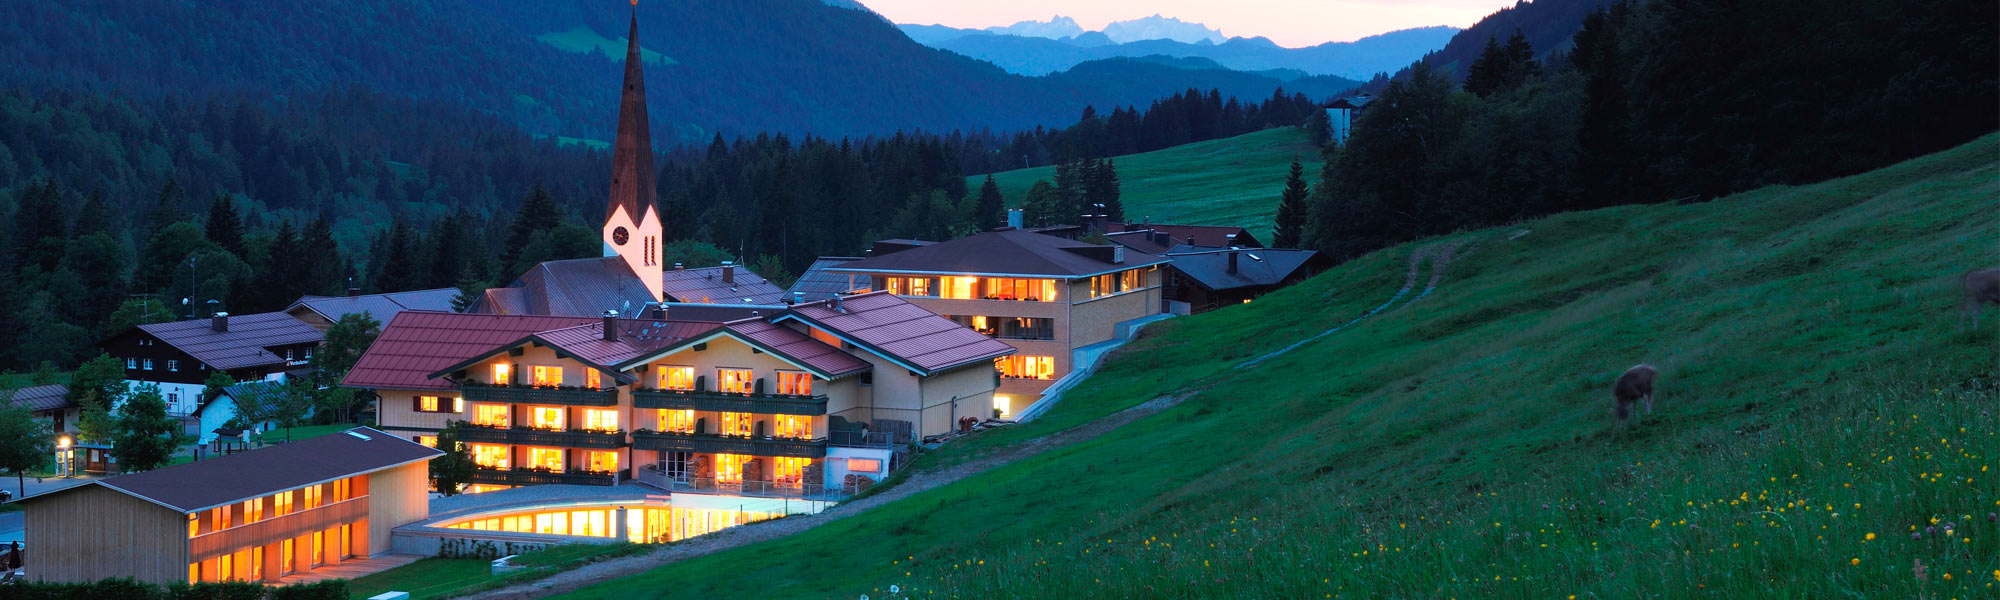 Hubertus Alpin Lodge